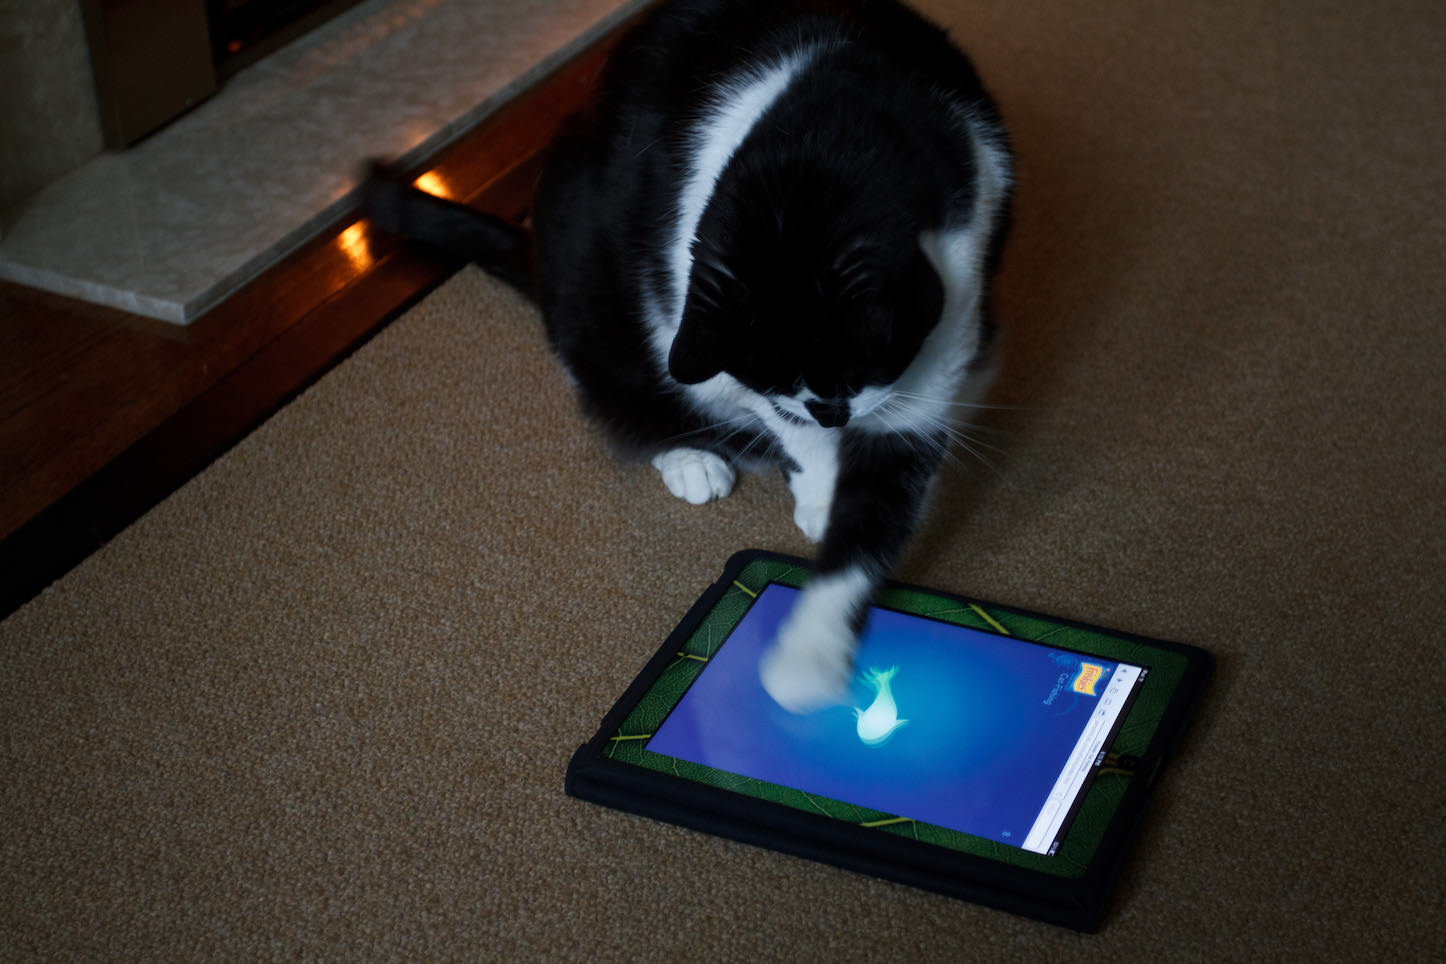 cat-playing-around-with-fish-app.jpg